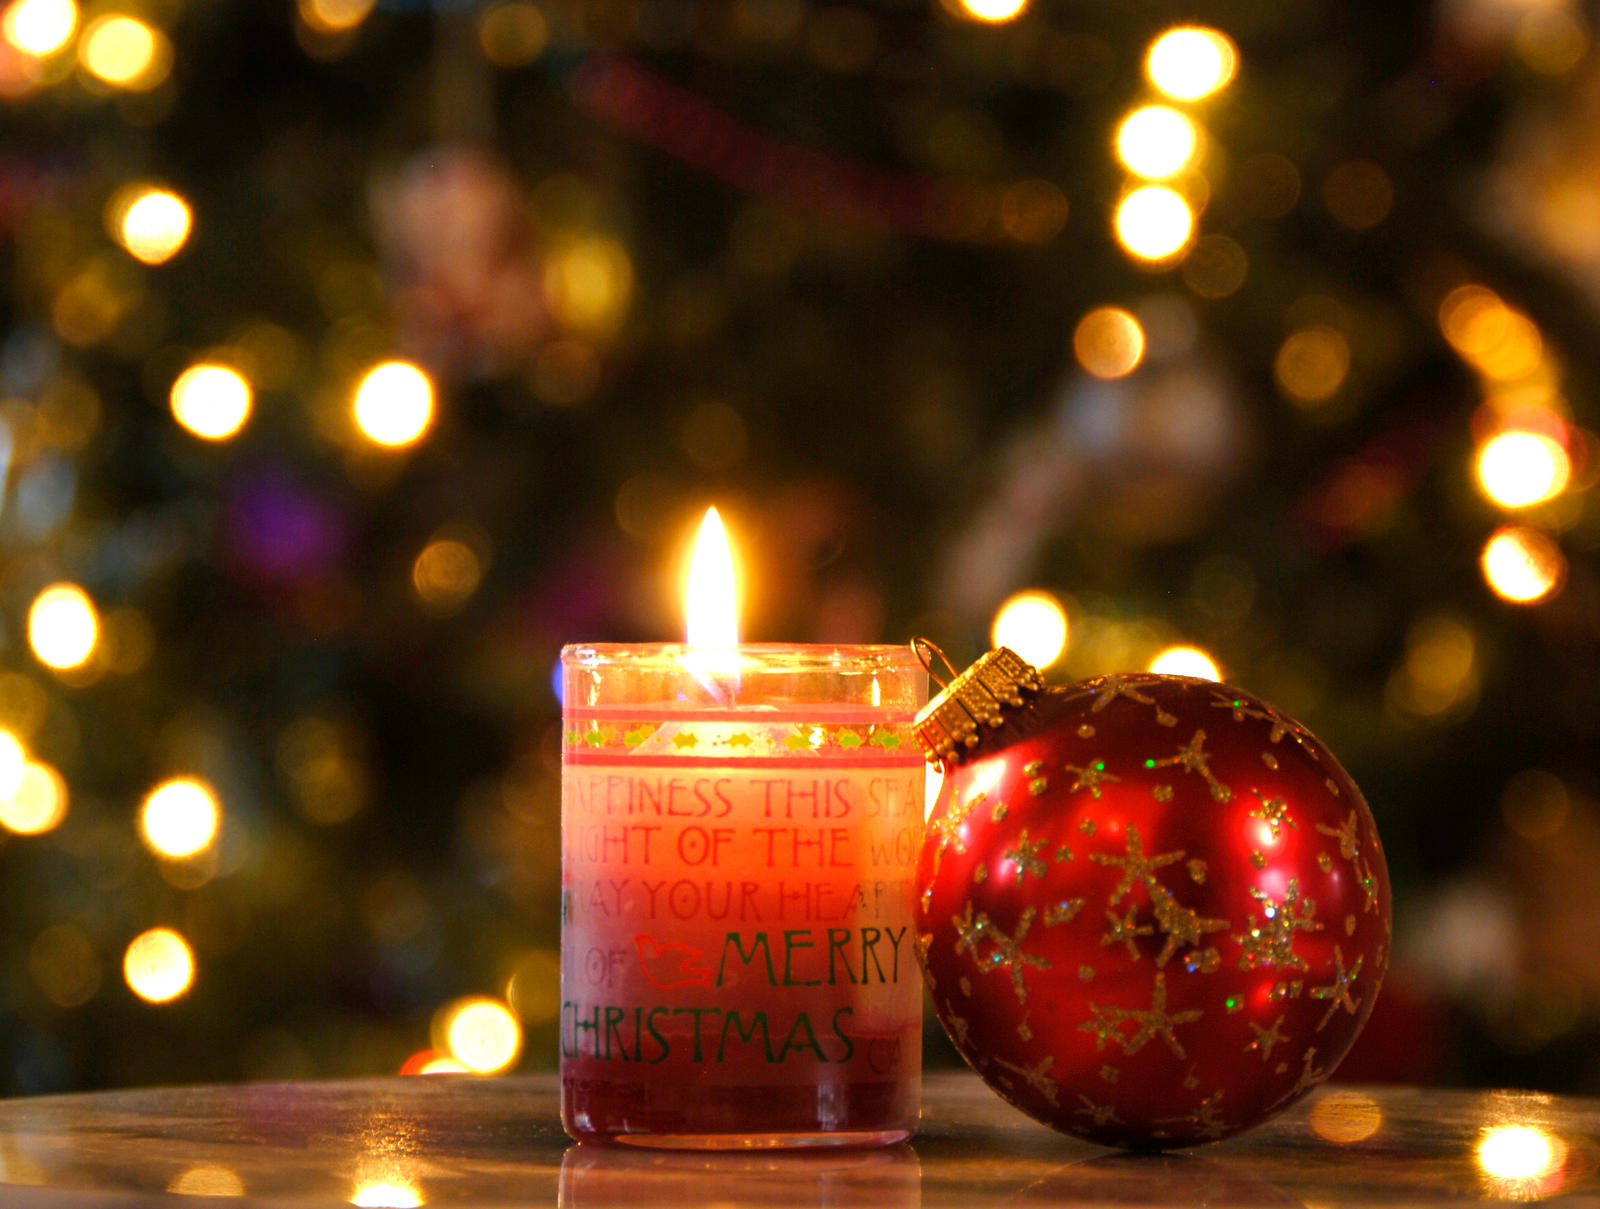 Christmas Candle and Ornament by MogieG123 on DeviantArt